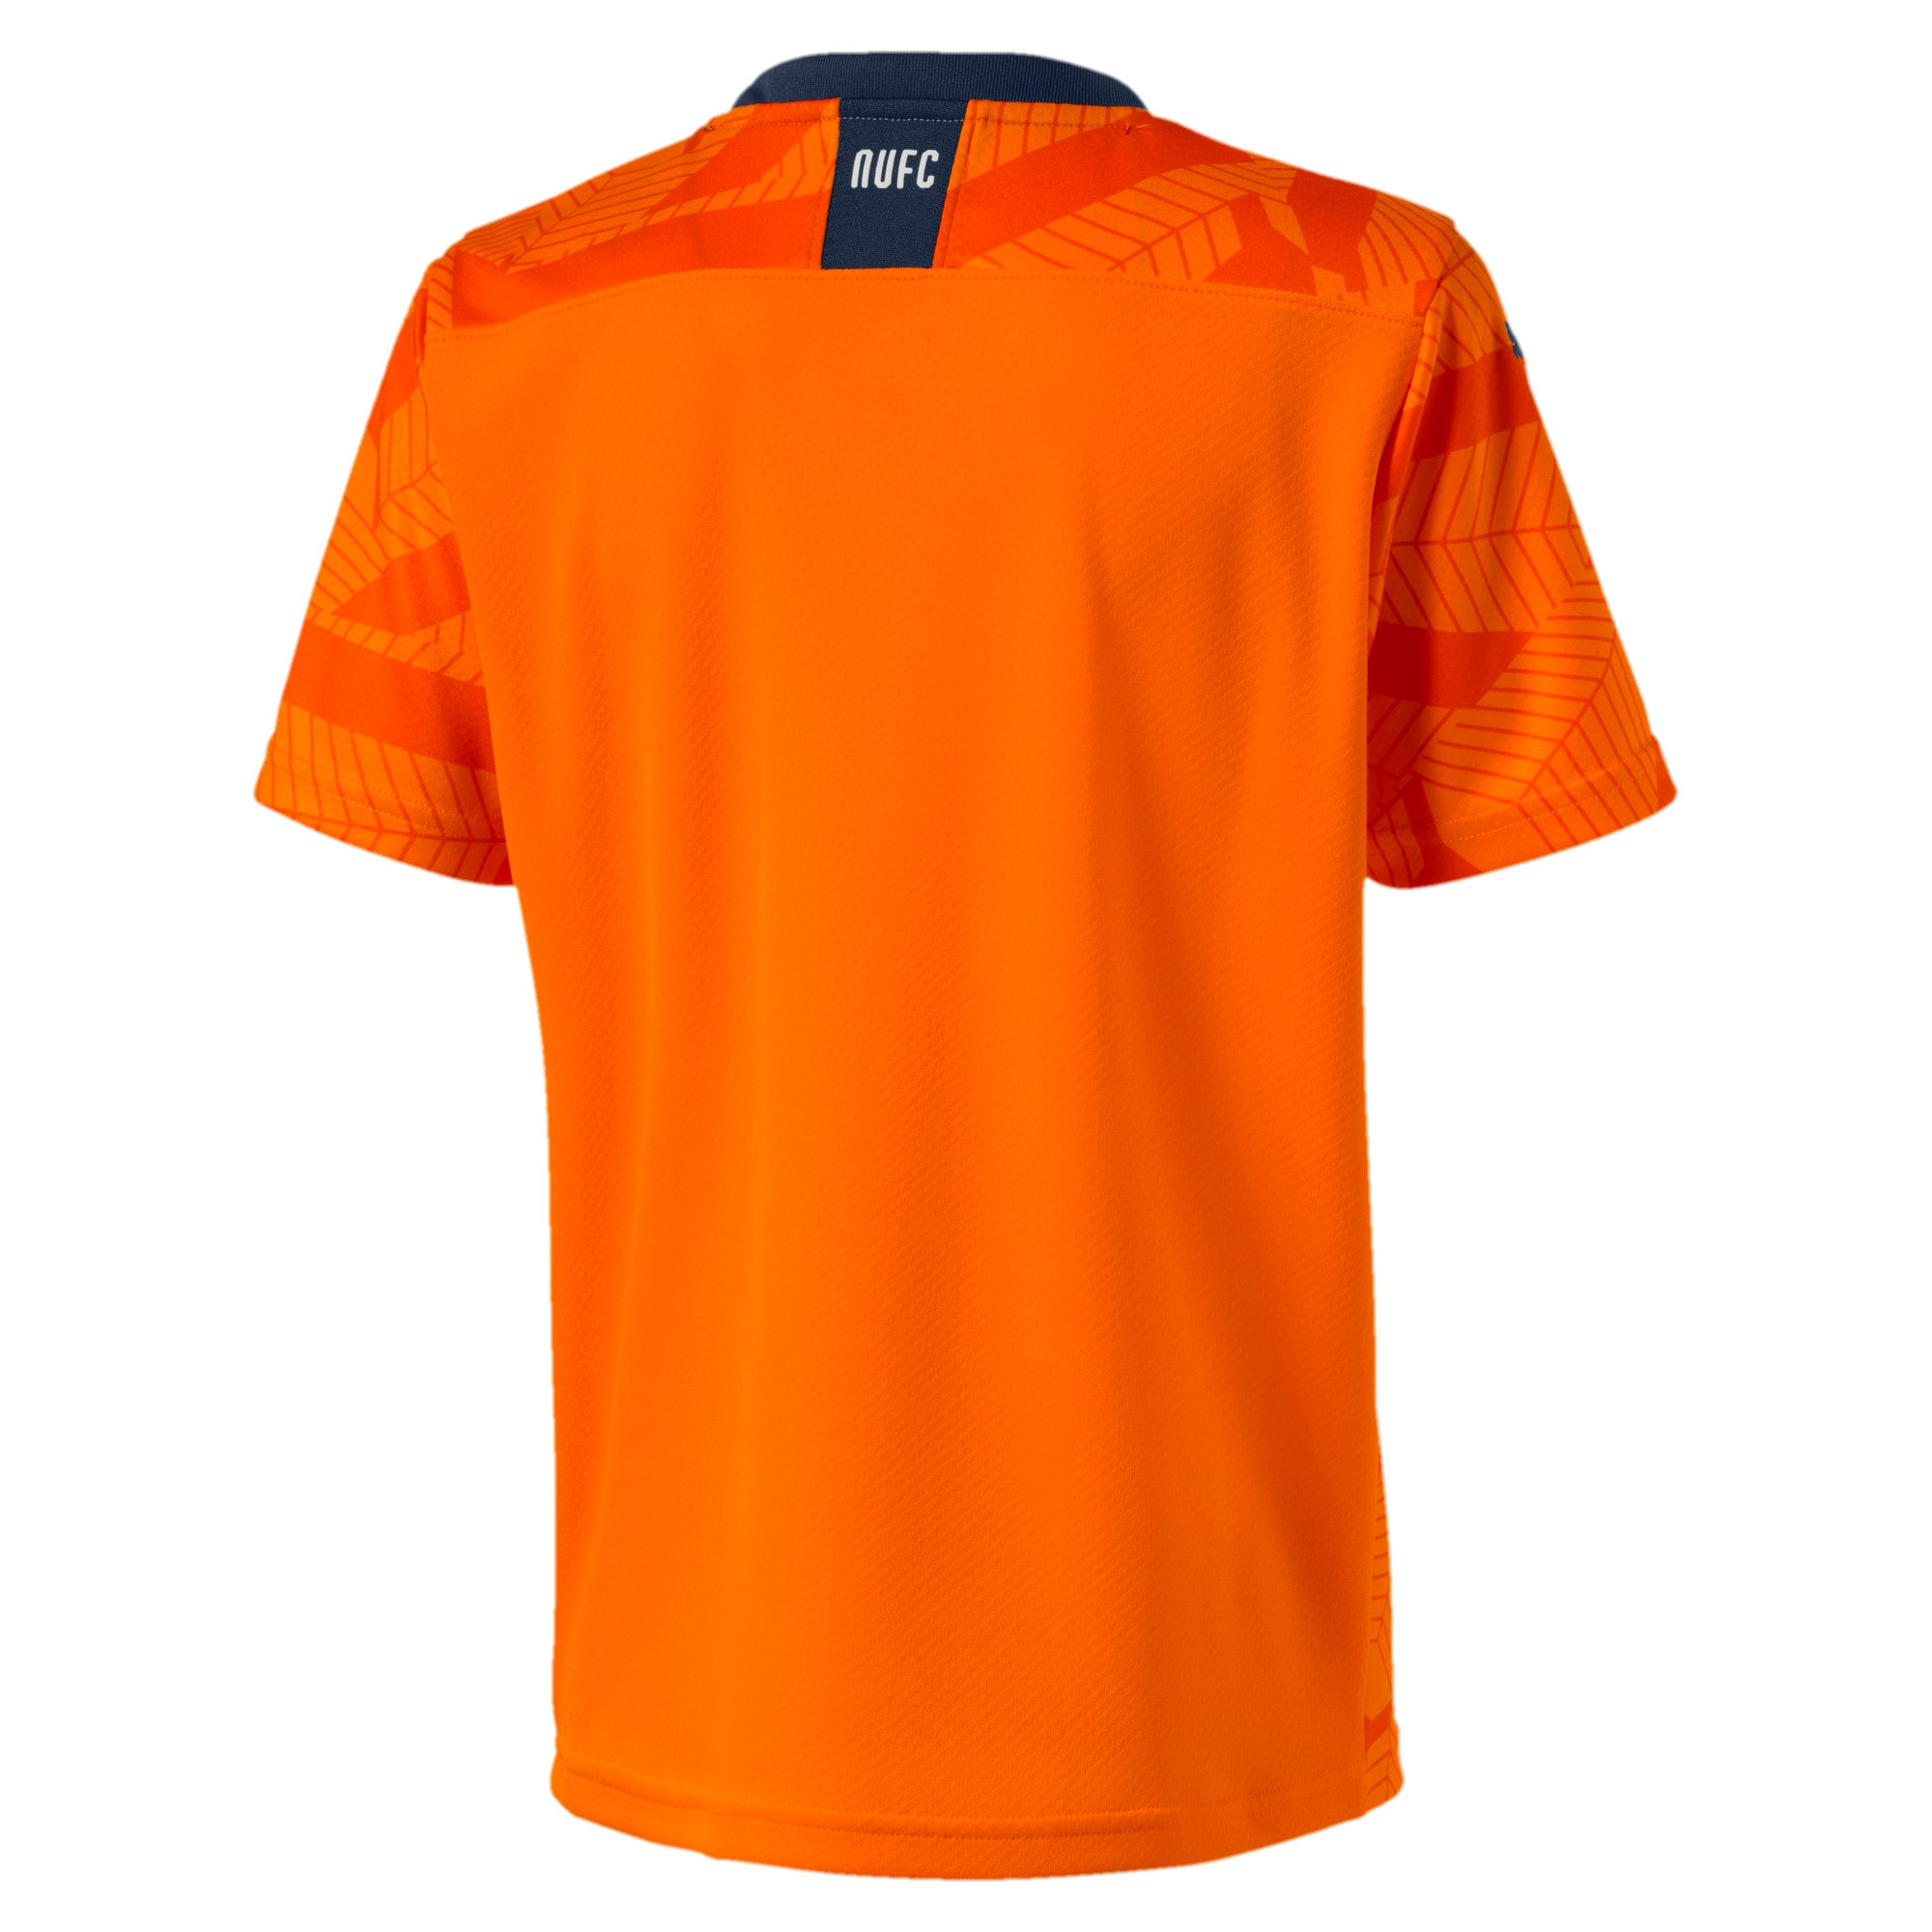 Thumbnail 2 of Newcastle United FC Boys' Third Replica Short Sleeve Jersey, Vibrant Orange-Peacoat, medium